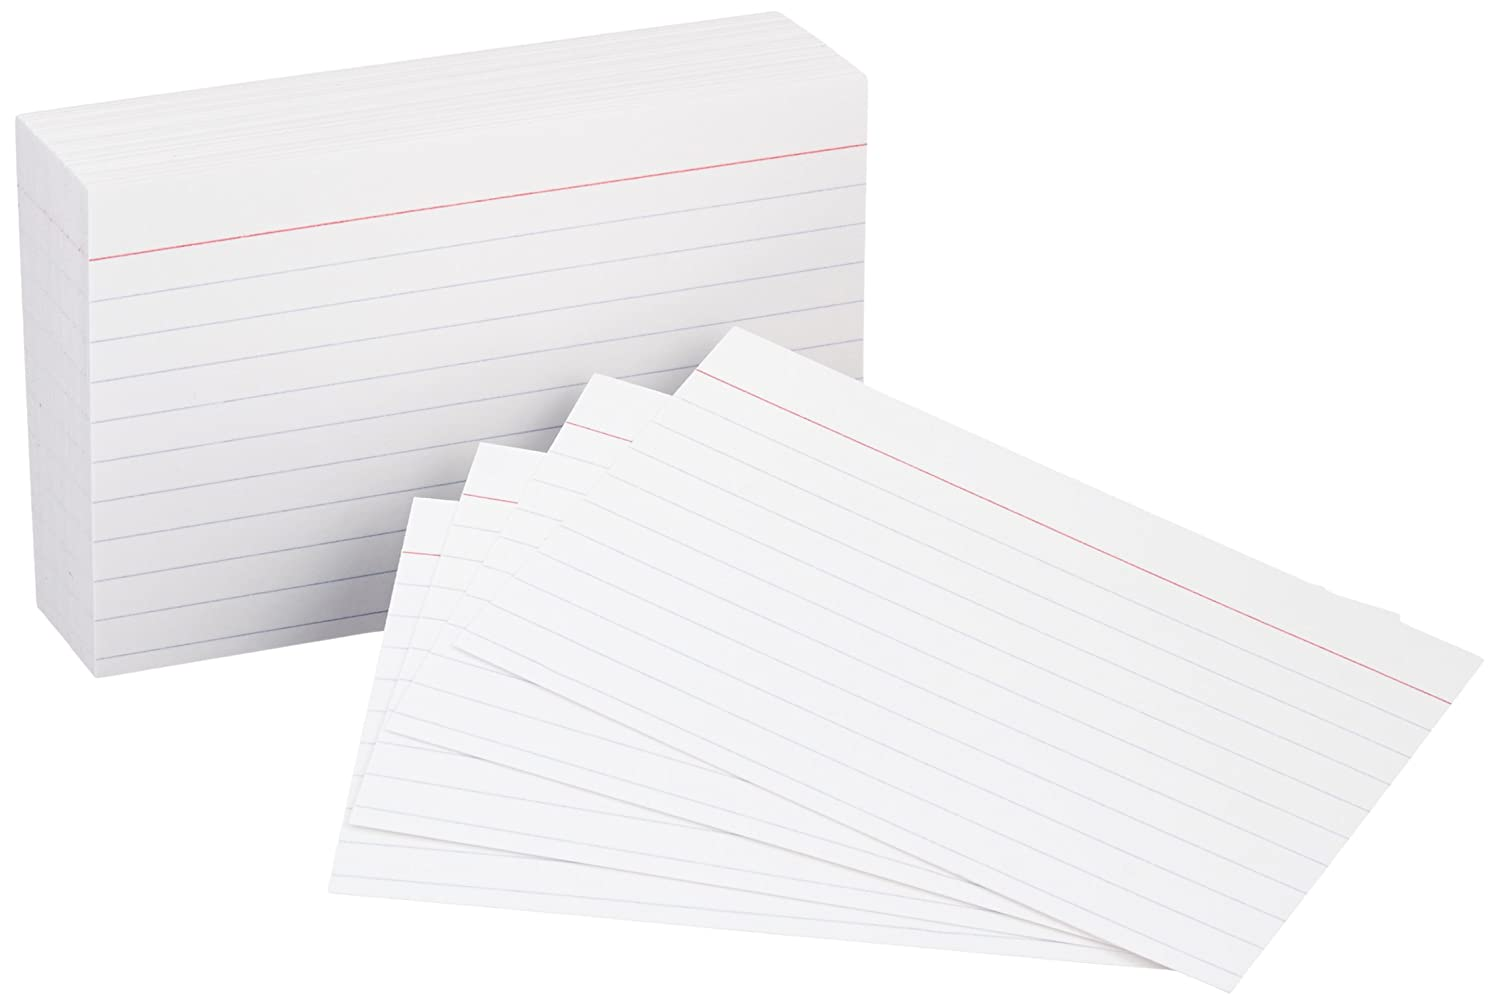 AmazonBasics Heavy Weight Ruled Index Cards, White, 3x5-Inch, 100-Count